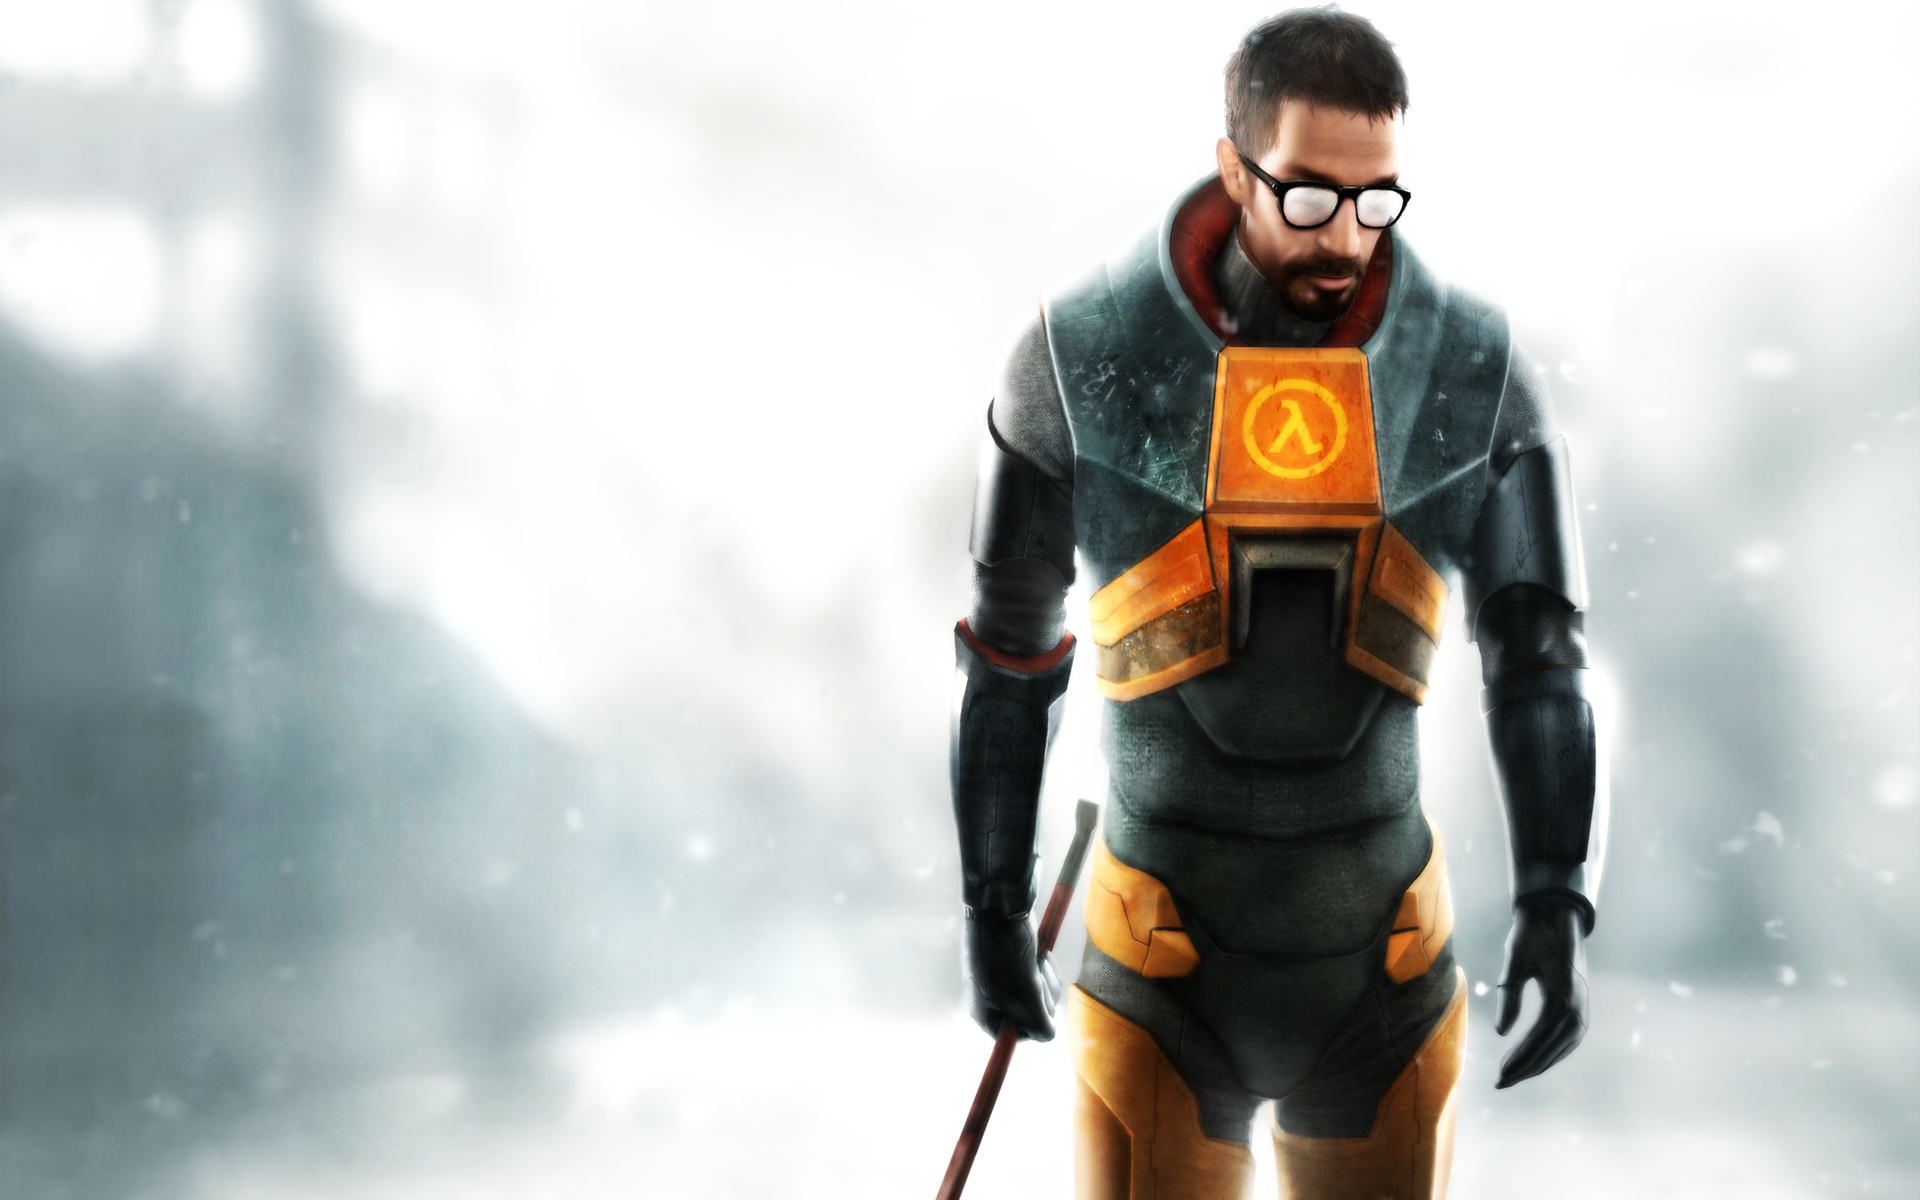 2588613 25808 half life half life 2 gordon freeman Half Life 3 Suffers Huge Setback After Writer Leaves Valve